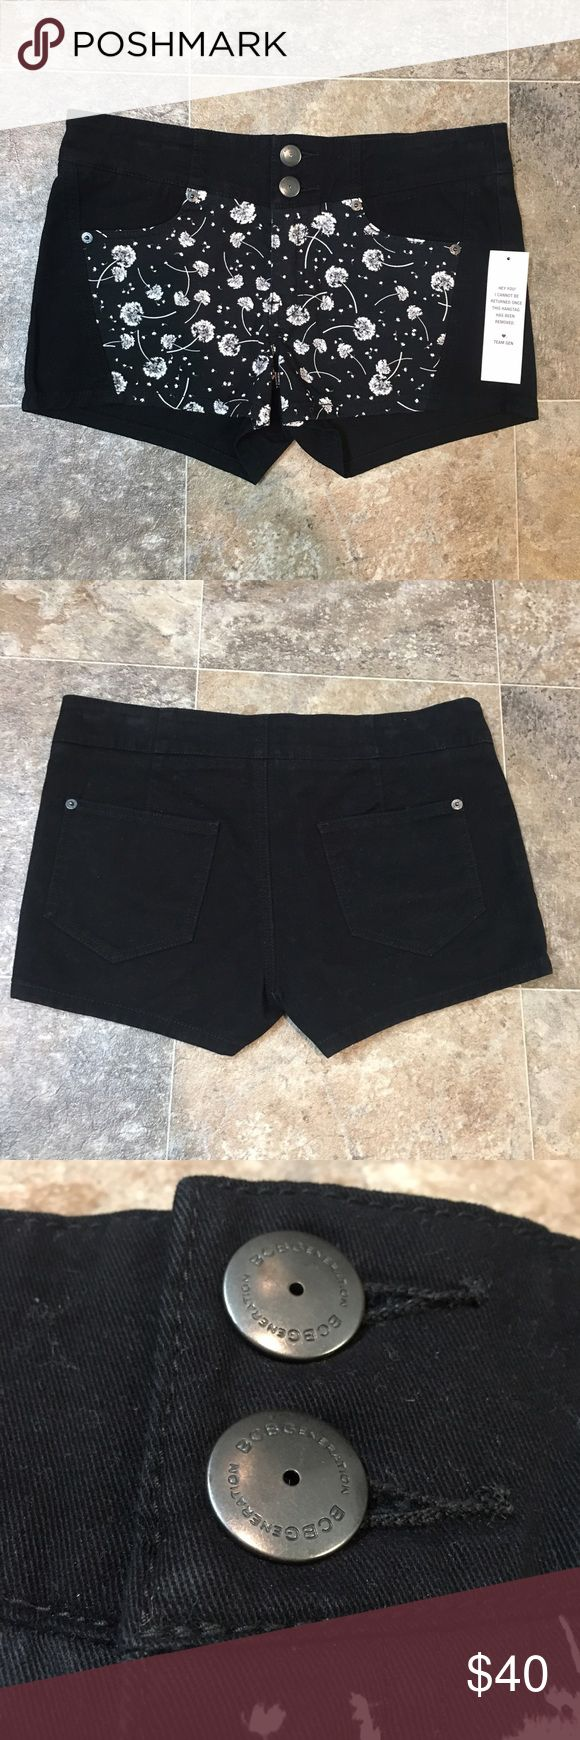 BCBGeneration shorts Adorable BCBGeneration shorts. They are black shorts with dandelion fluffs on the front. They have 2 buttons in the front. They are brand new with the tags still attached. They're a size 27.   🌸BUNDLE AND SAVE  🌸NO TRADES 🌸REASONABLE OFFERS CONSIDERED  🌸FEEL FREE TO ASK QUESTIONS 🌸I DO NOT MODEL BCBGeneration Shorts